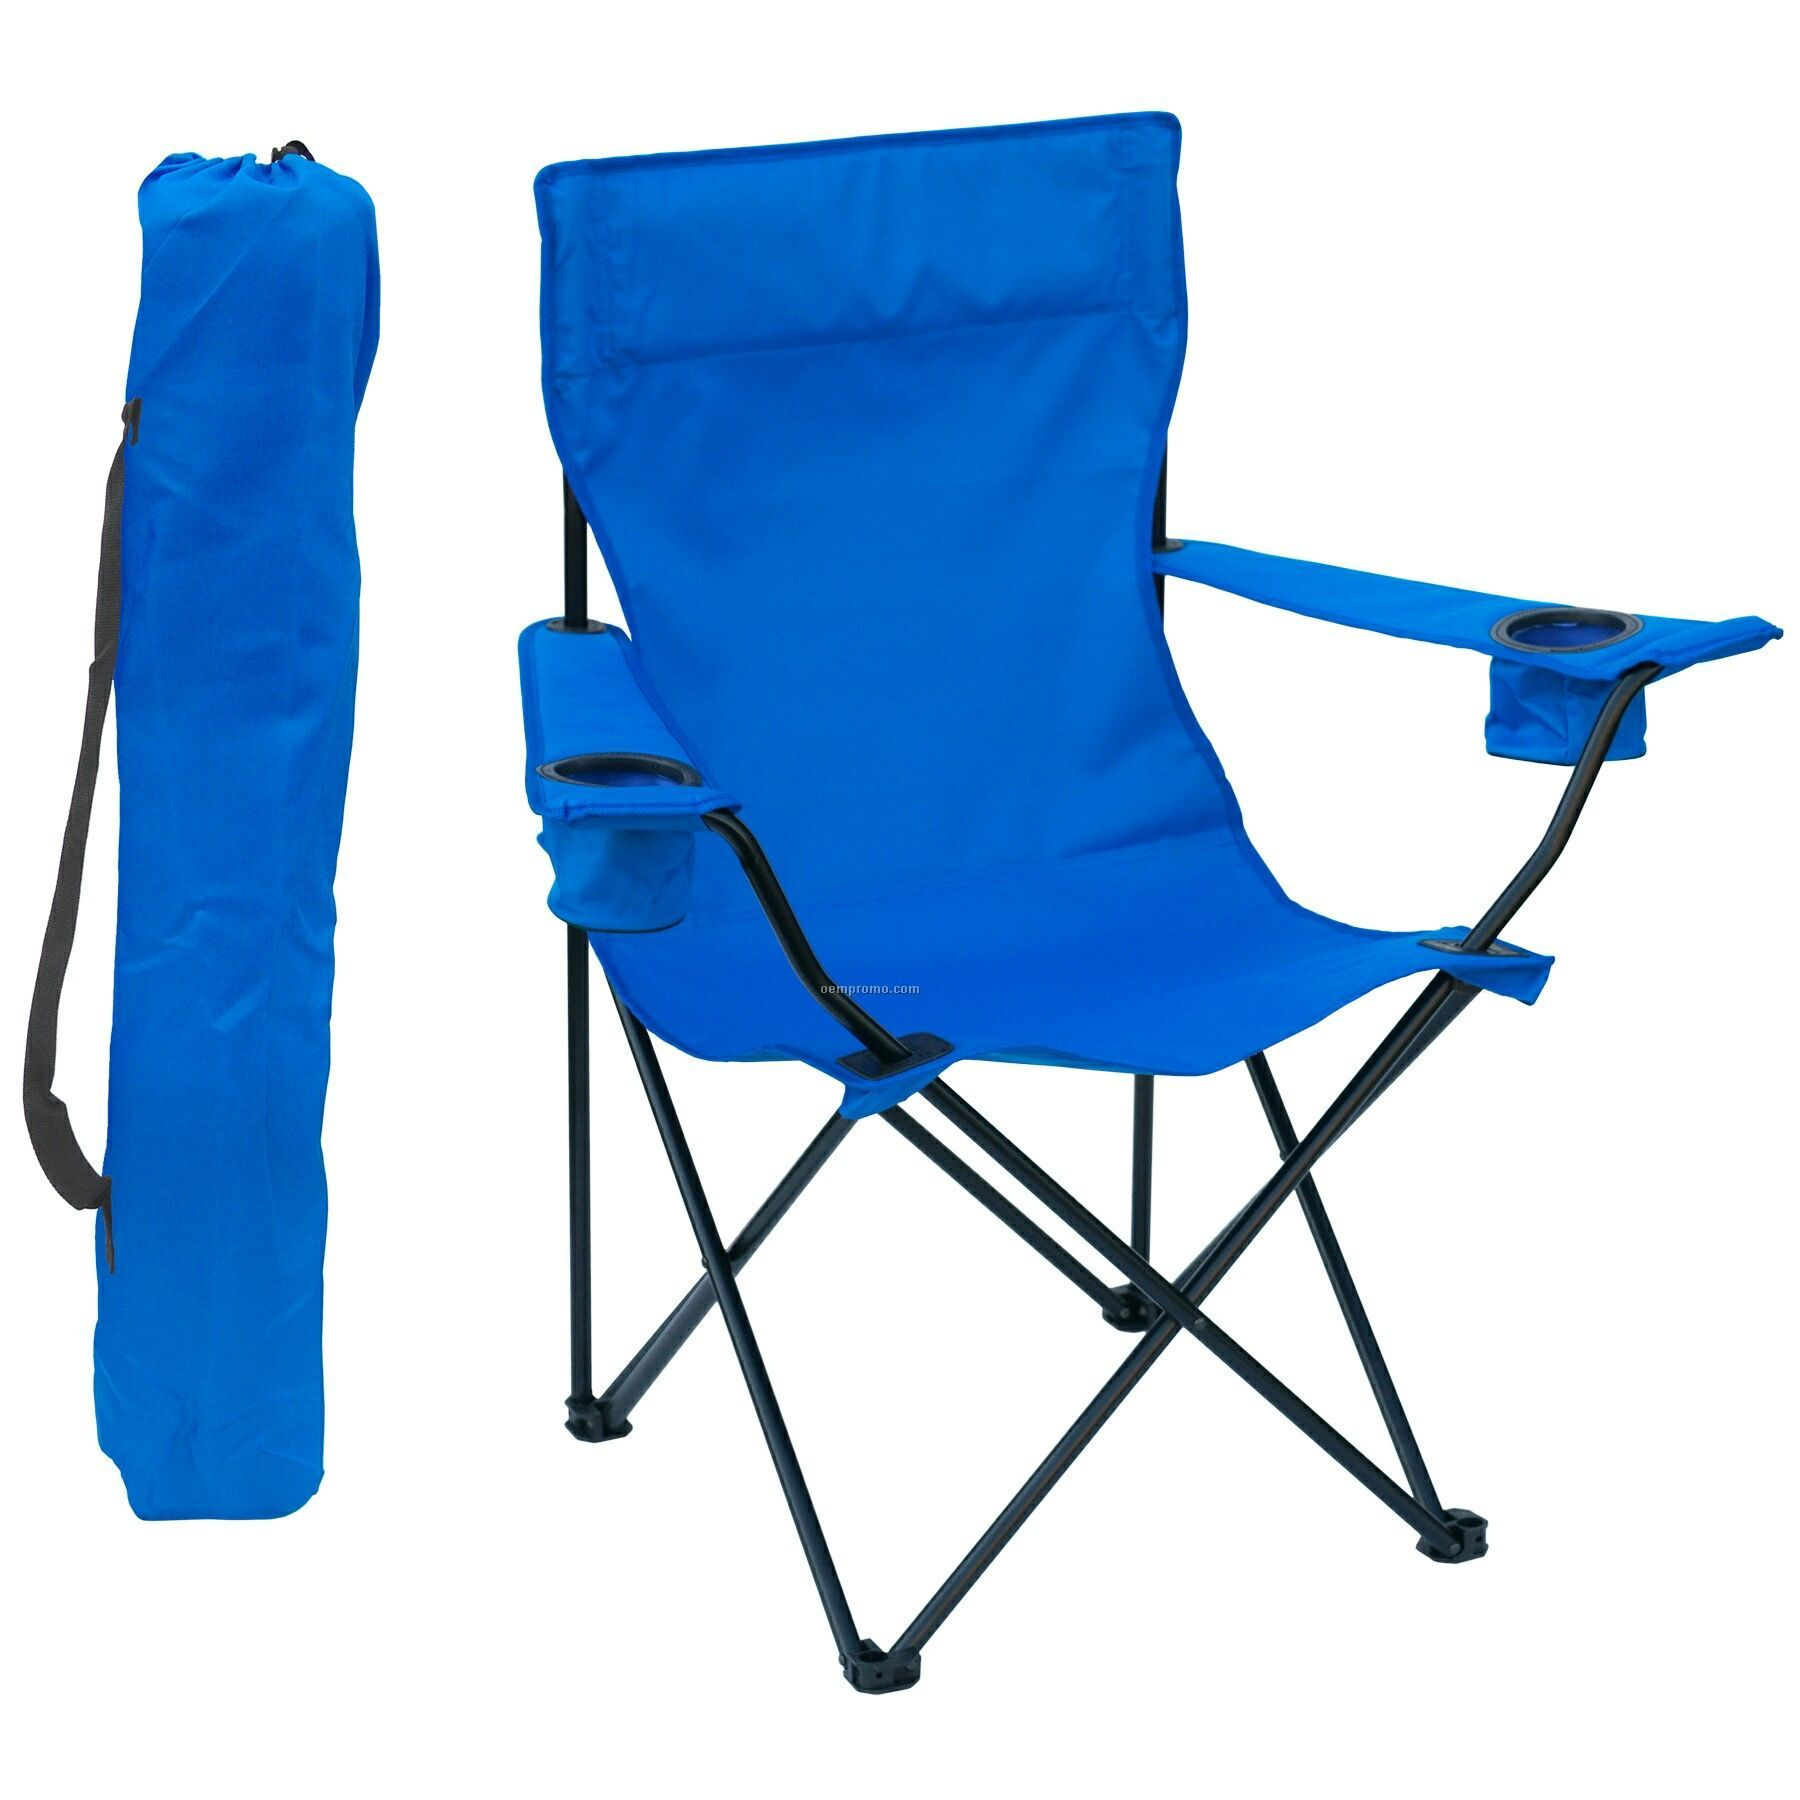 buy camping beach folding chair in pakistan. Black Bedroom Furniture Sets. Home Design Ideas